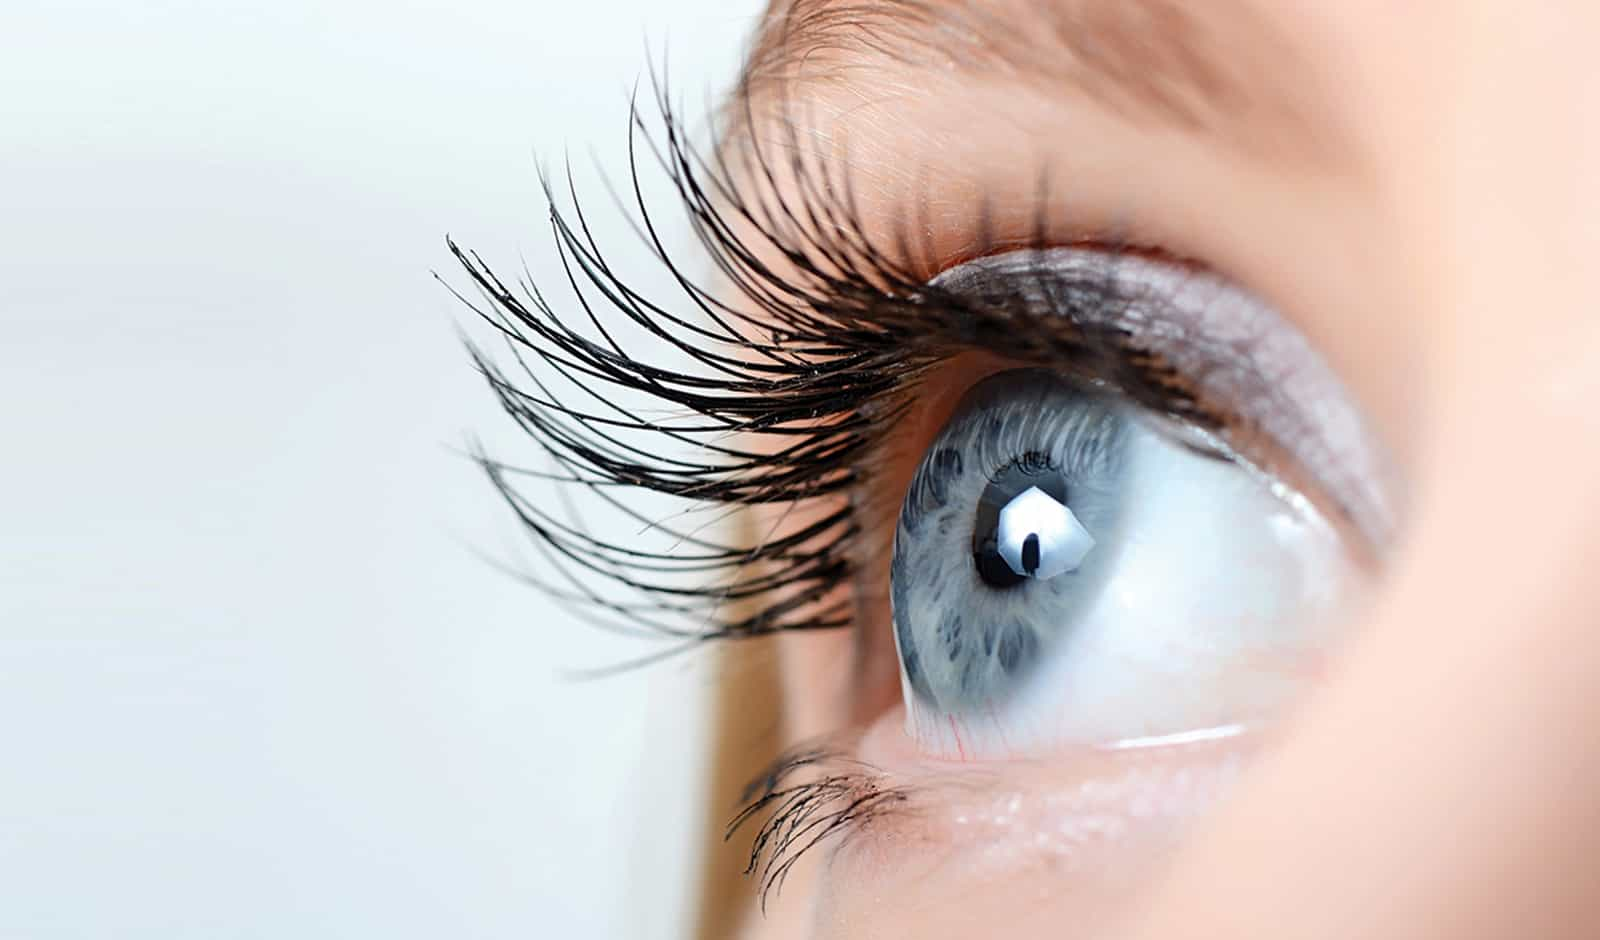 8-ways-to-get-longer-and-healthier-lashes-main-image.